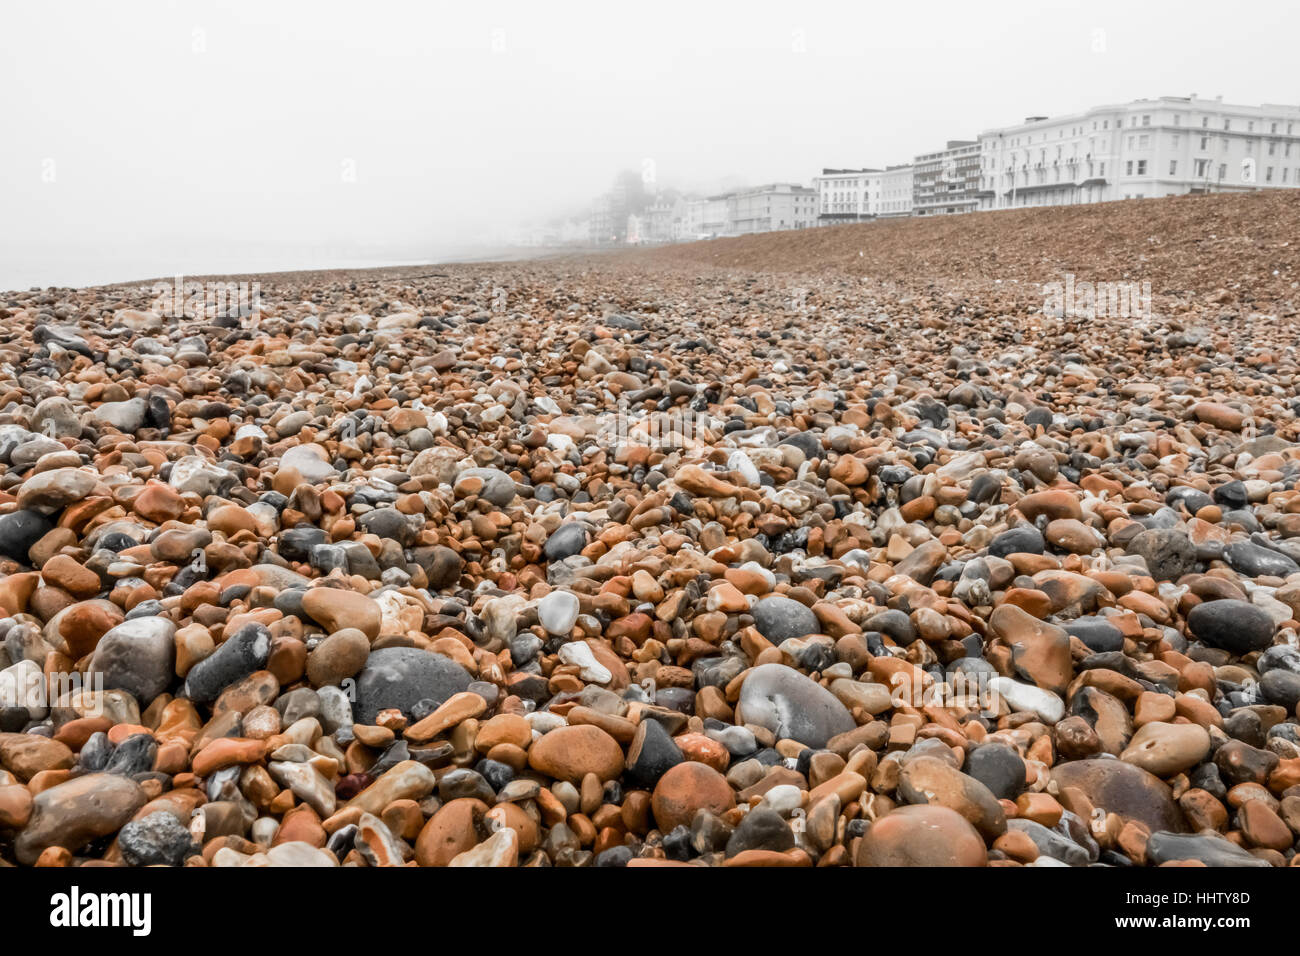 Hastings stony beach on a cold winter day, England, UK - Stock Image